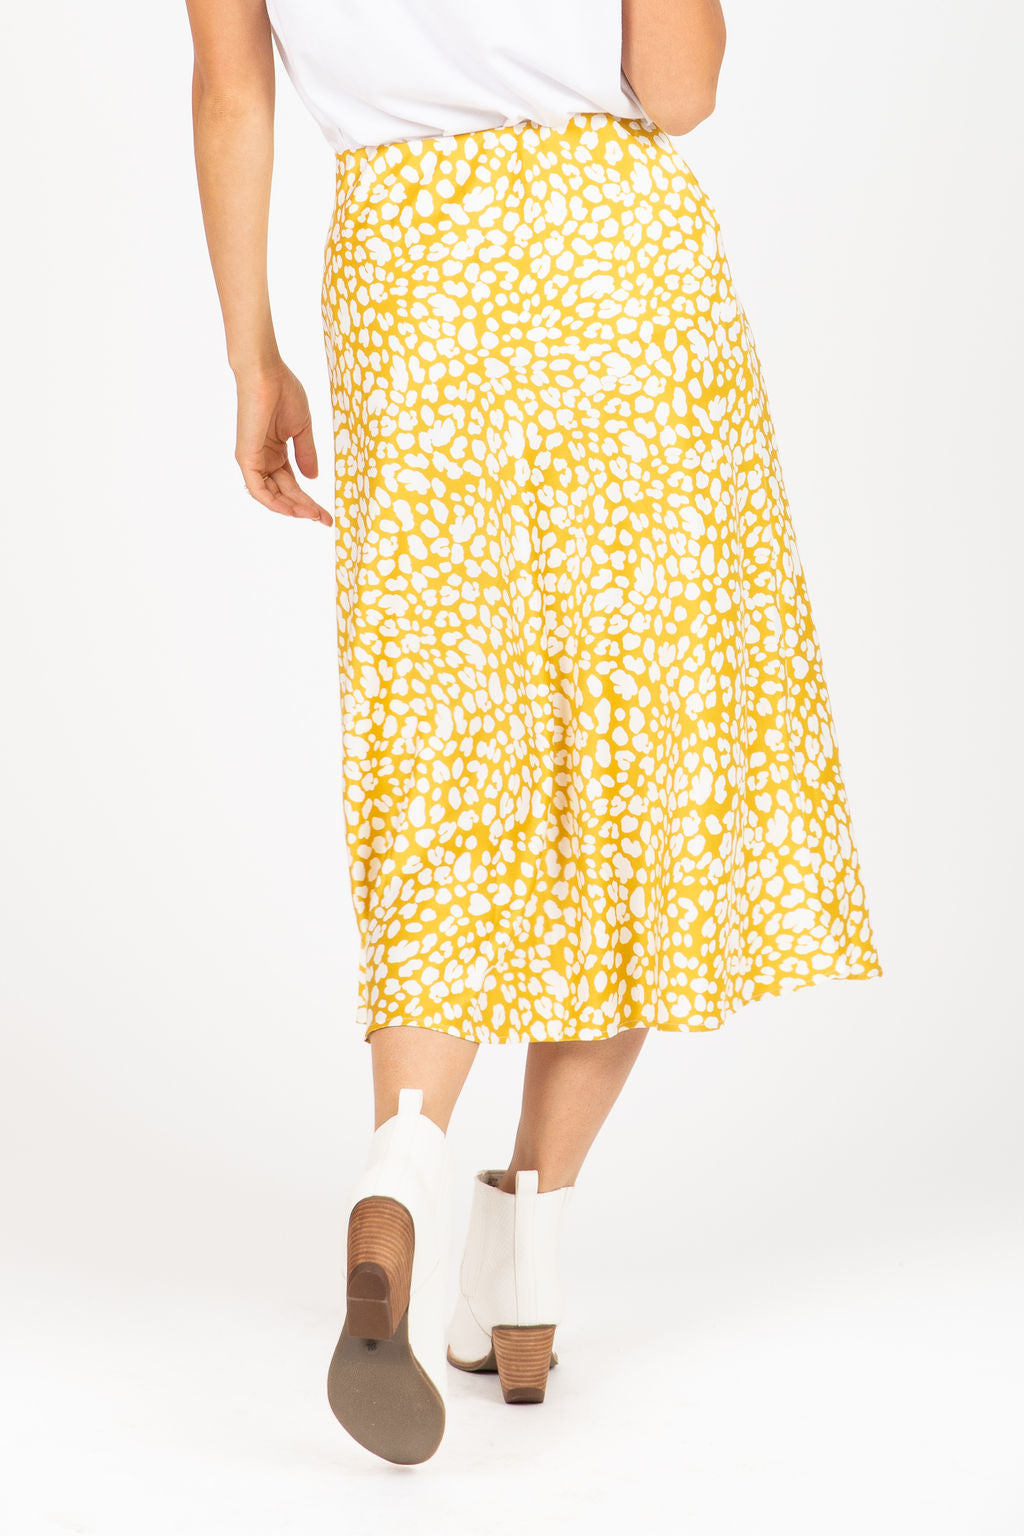 The Katia Leopard Print Midi Skirt in Golden